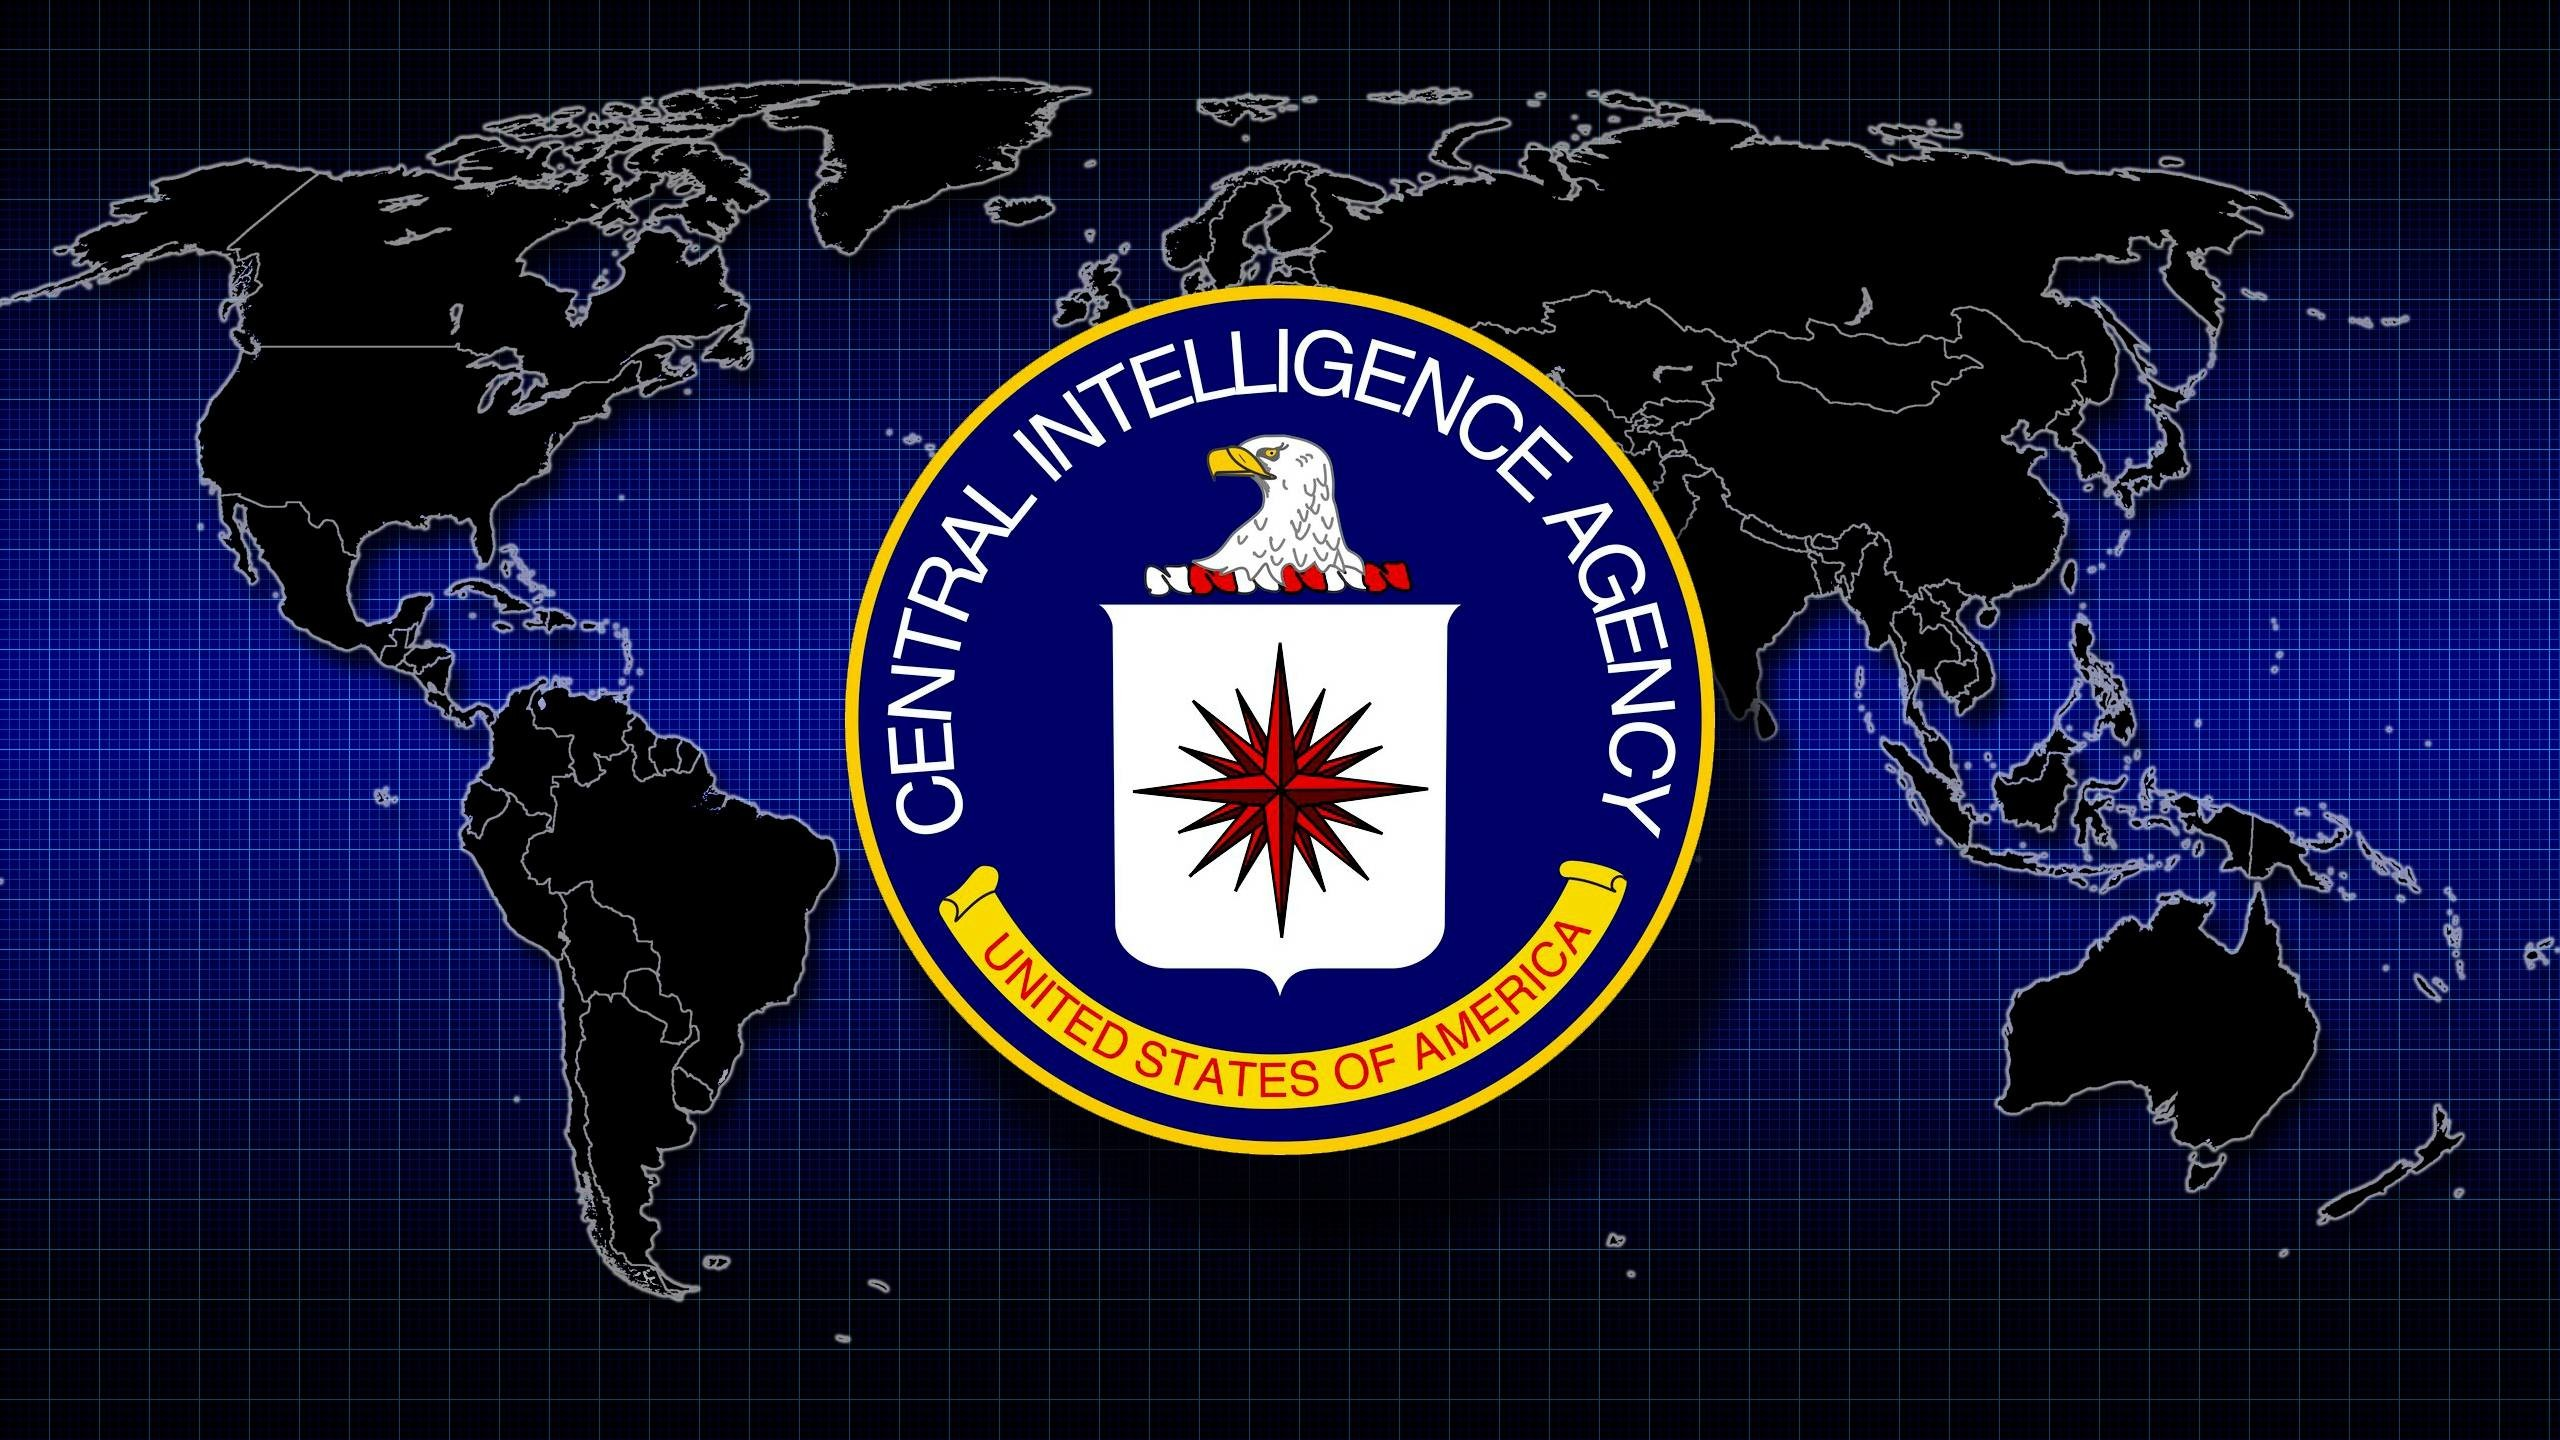 2560x1440 Wallpapers For > Secret Intelligence Service Wallpaper